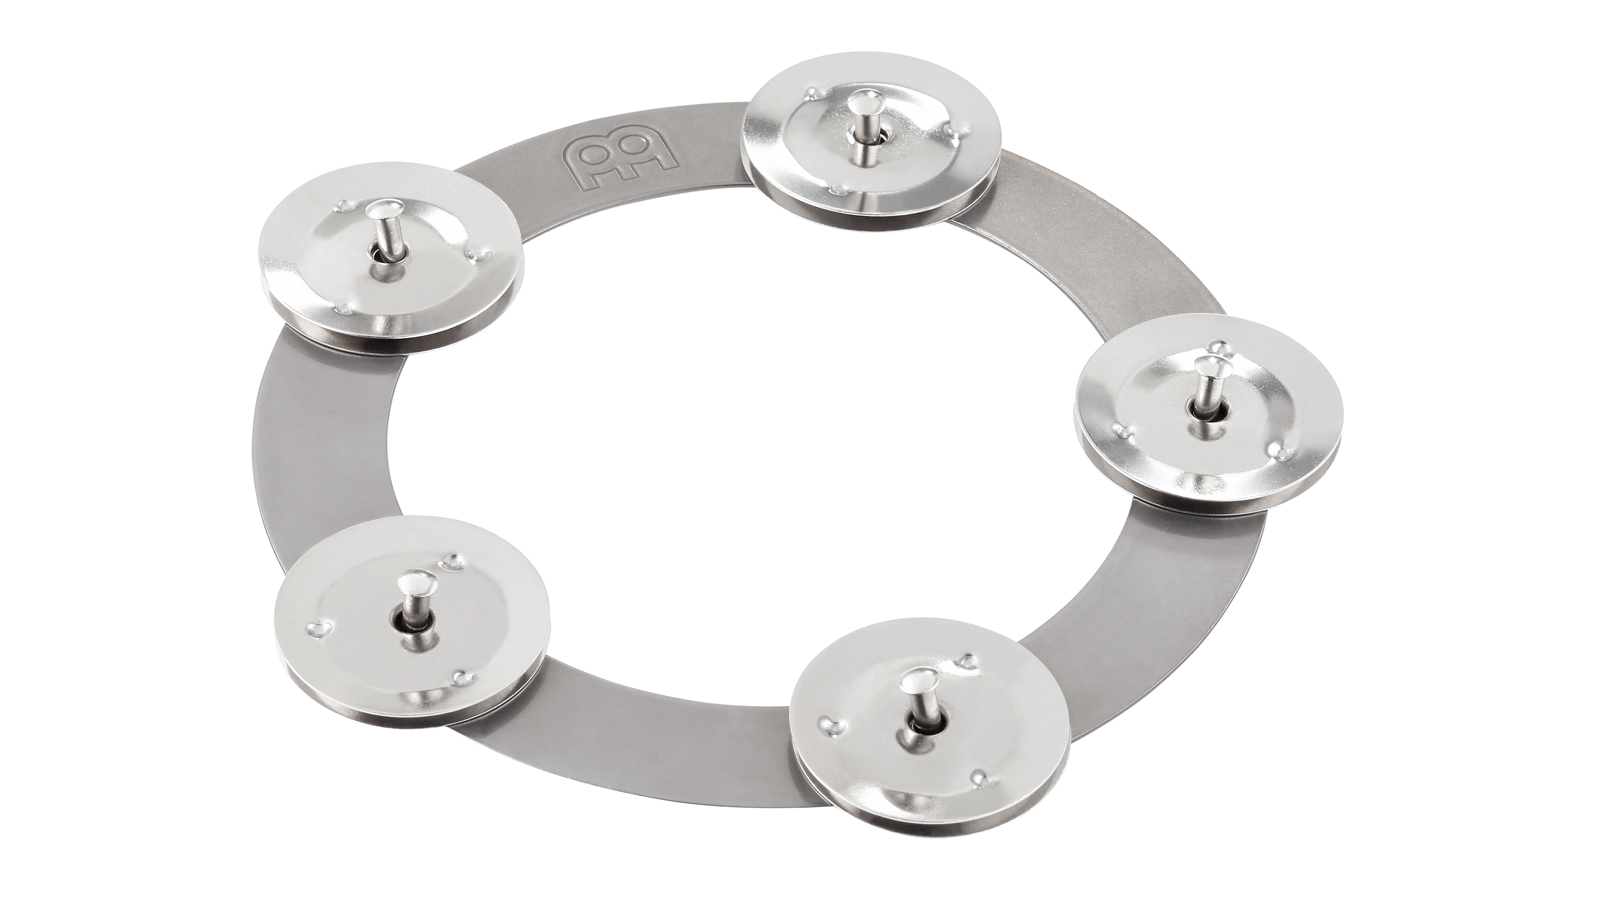 Meinl CRING Ching Ring